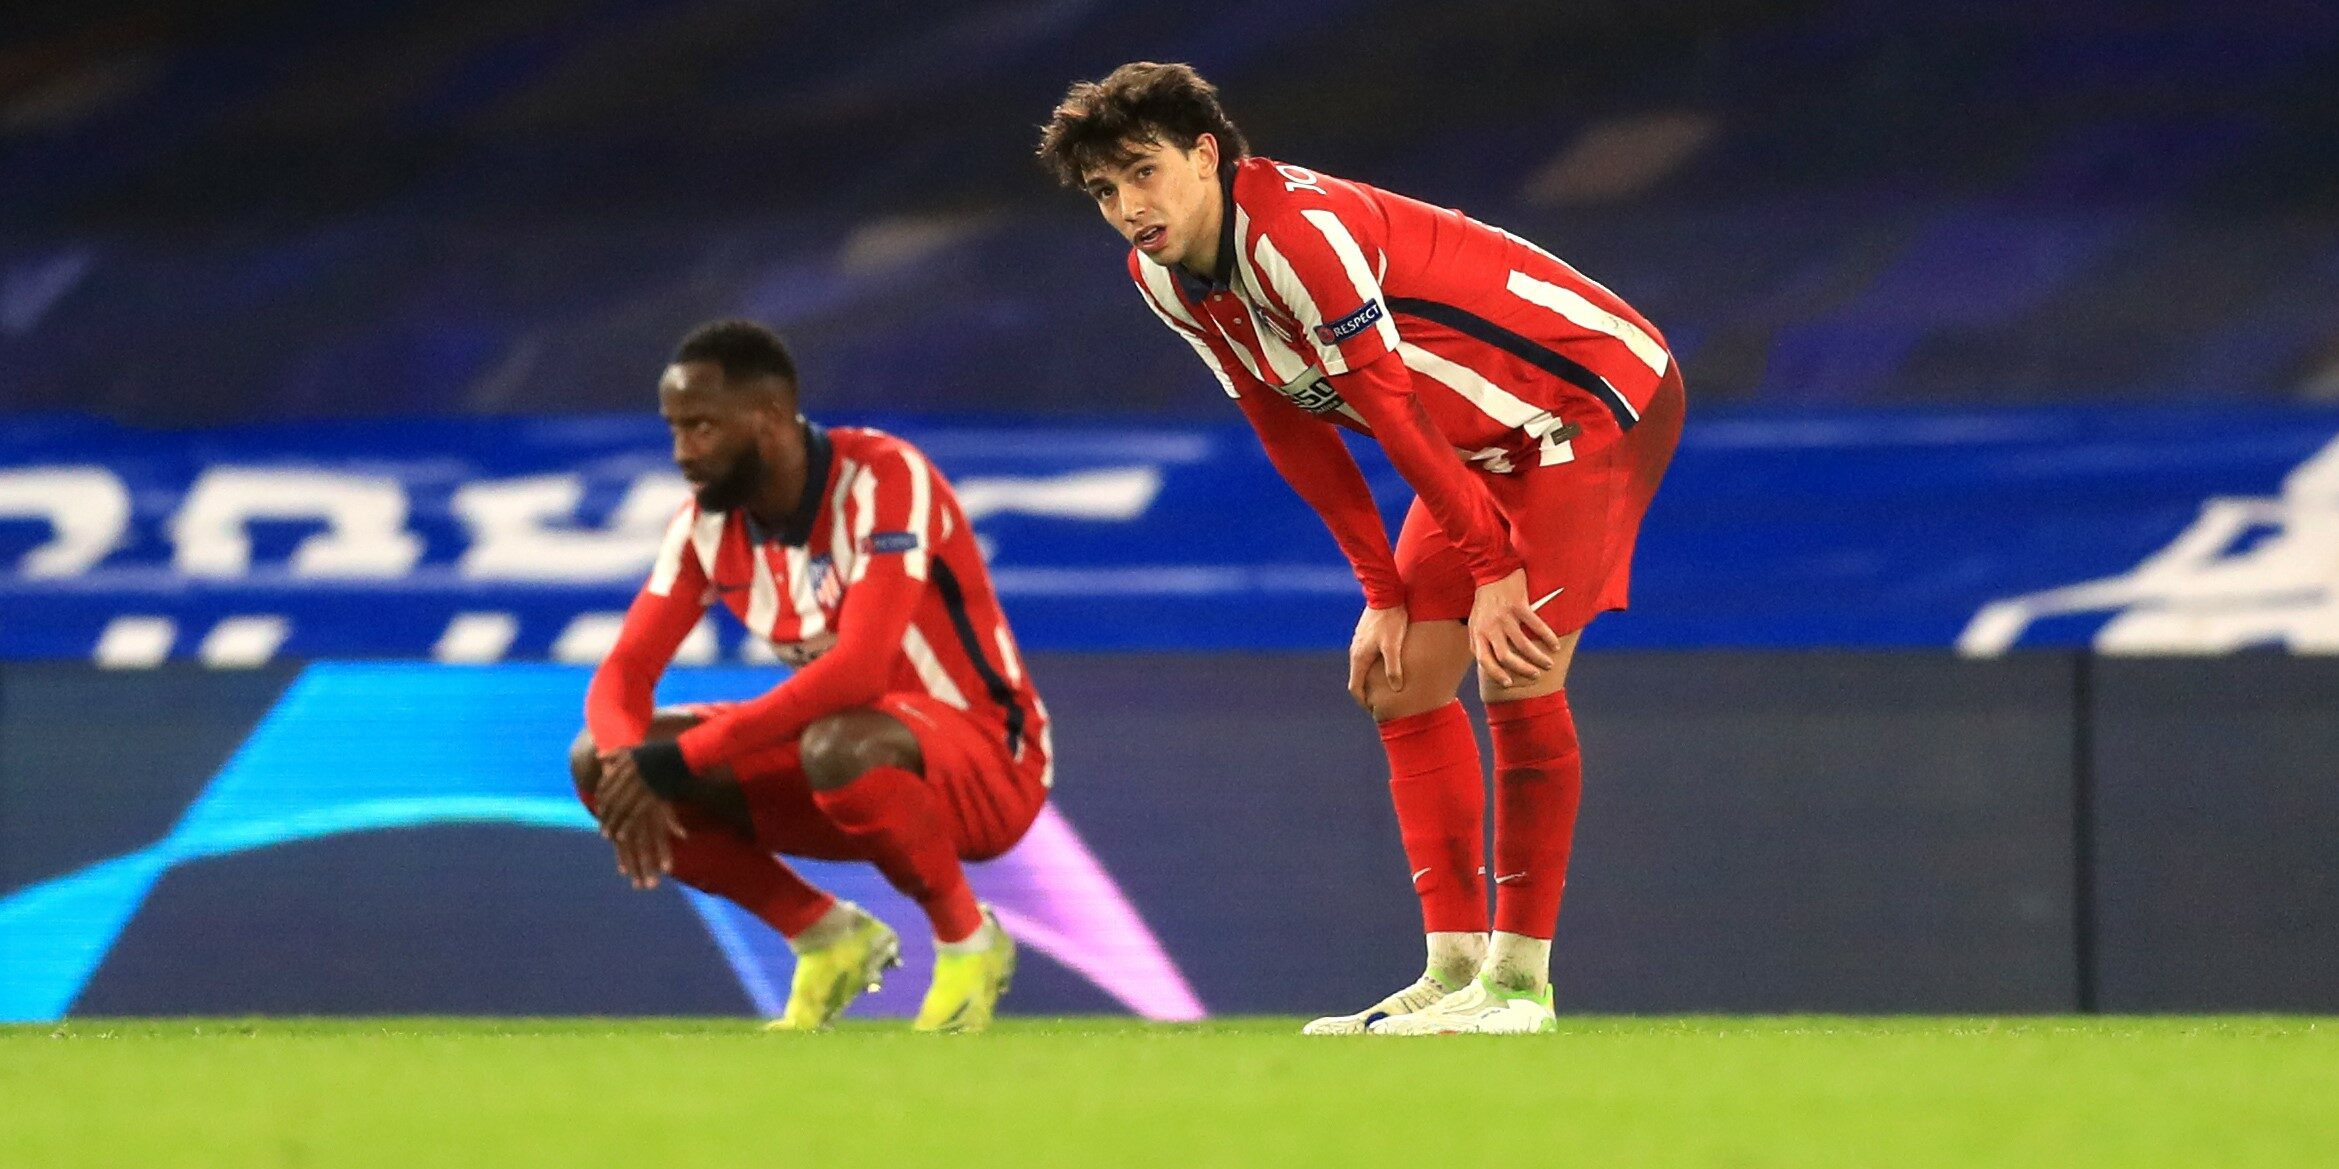 Joao Felix i Lemar, a Stamford Bridge | Europa Press